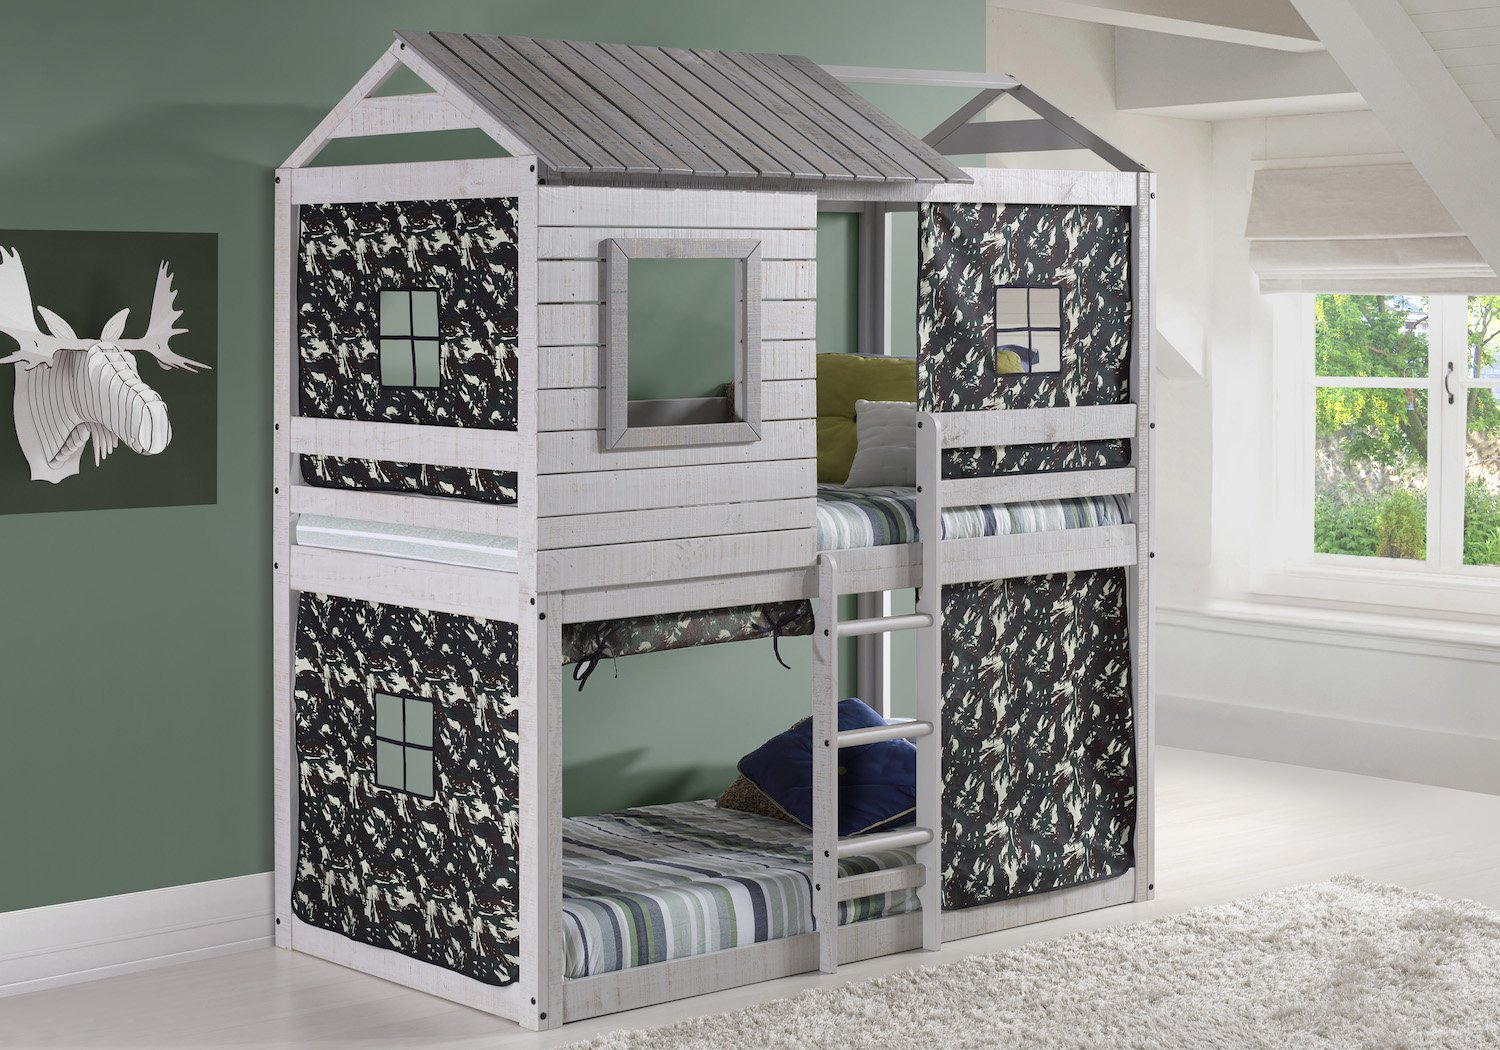 Amazon.com: House Double Bunk Beds With Camouflage Tents   Free Storage  Pockets: Kitchen U0026 Dining